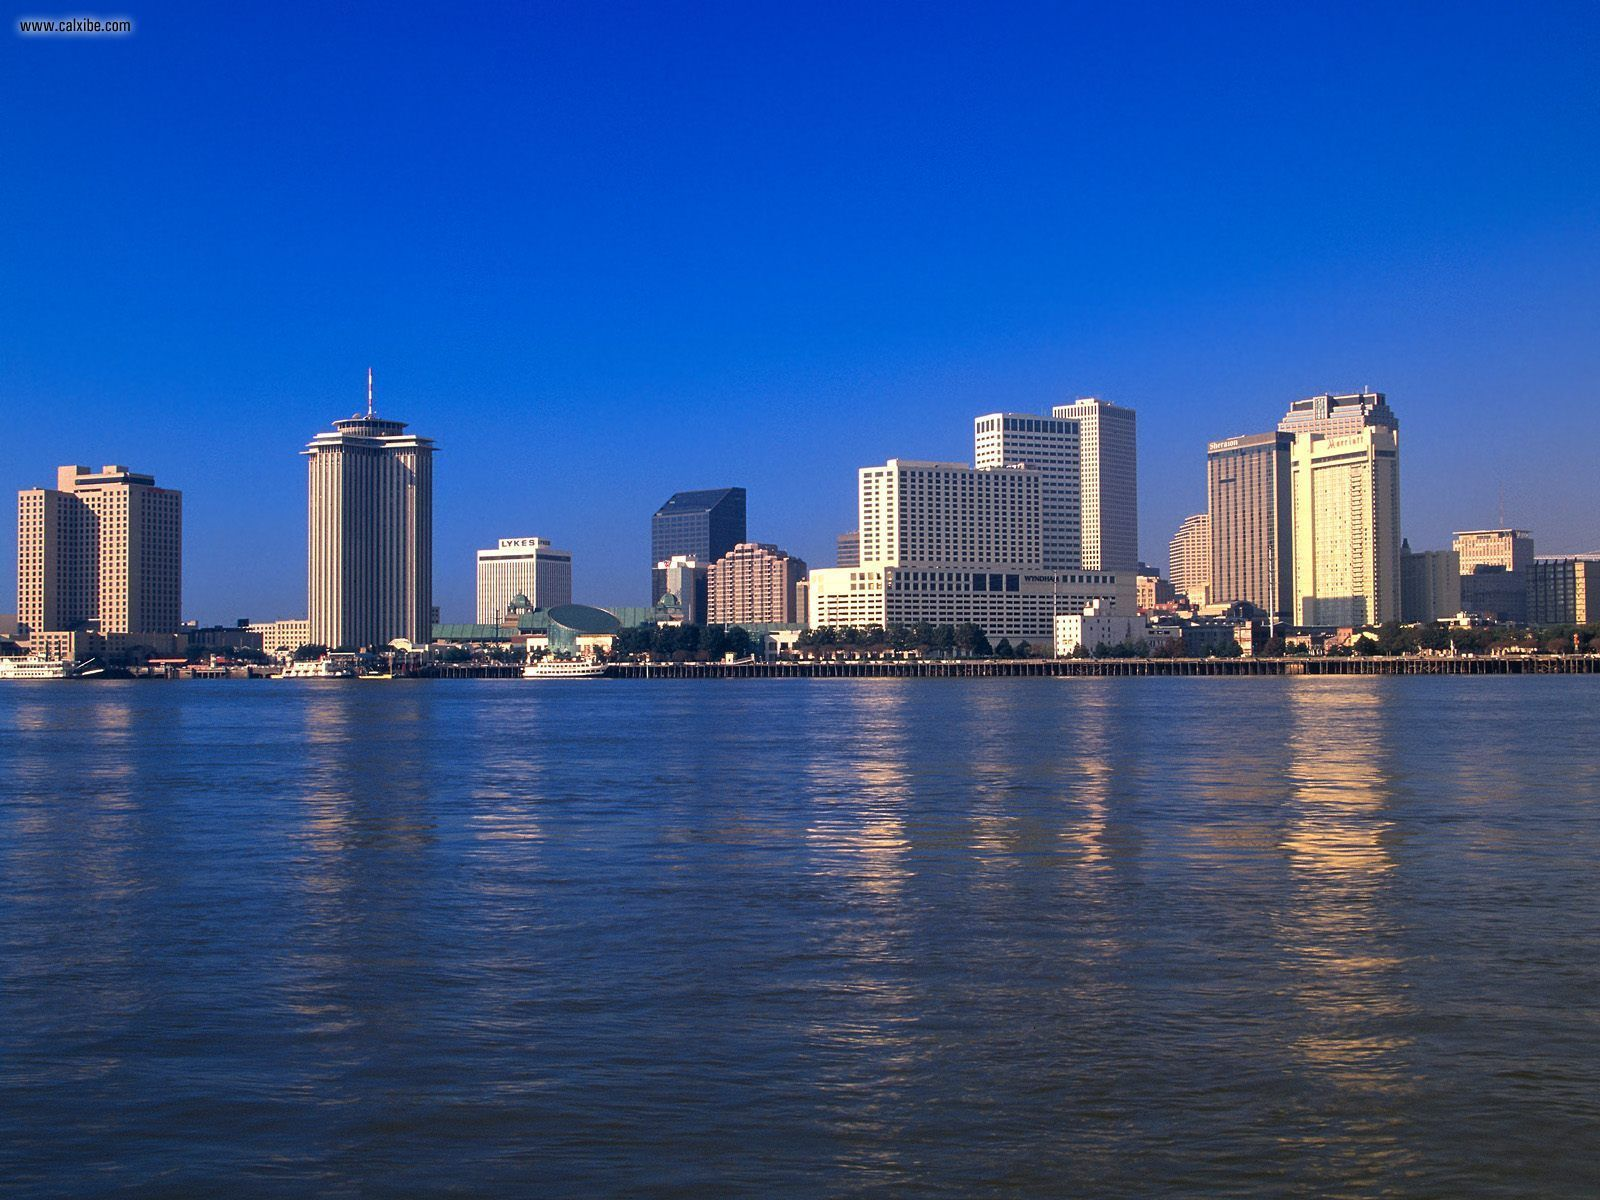 Windows 10 Wallpapers Hd Fall Free Photo New Orleans Skyline Orleans Neworleans